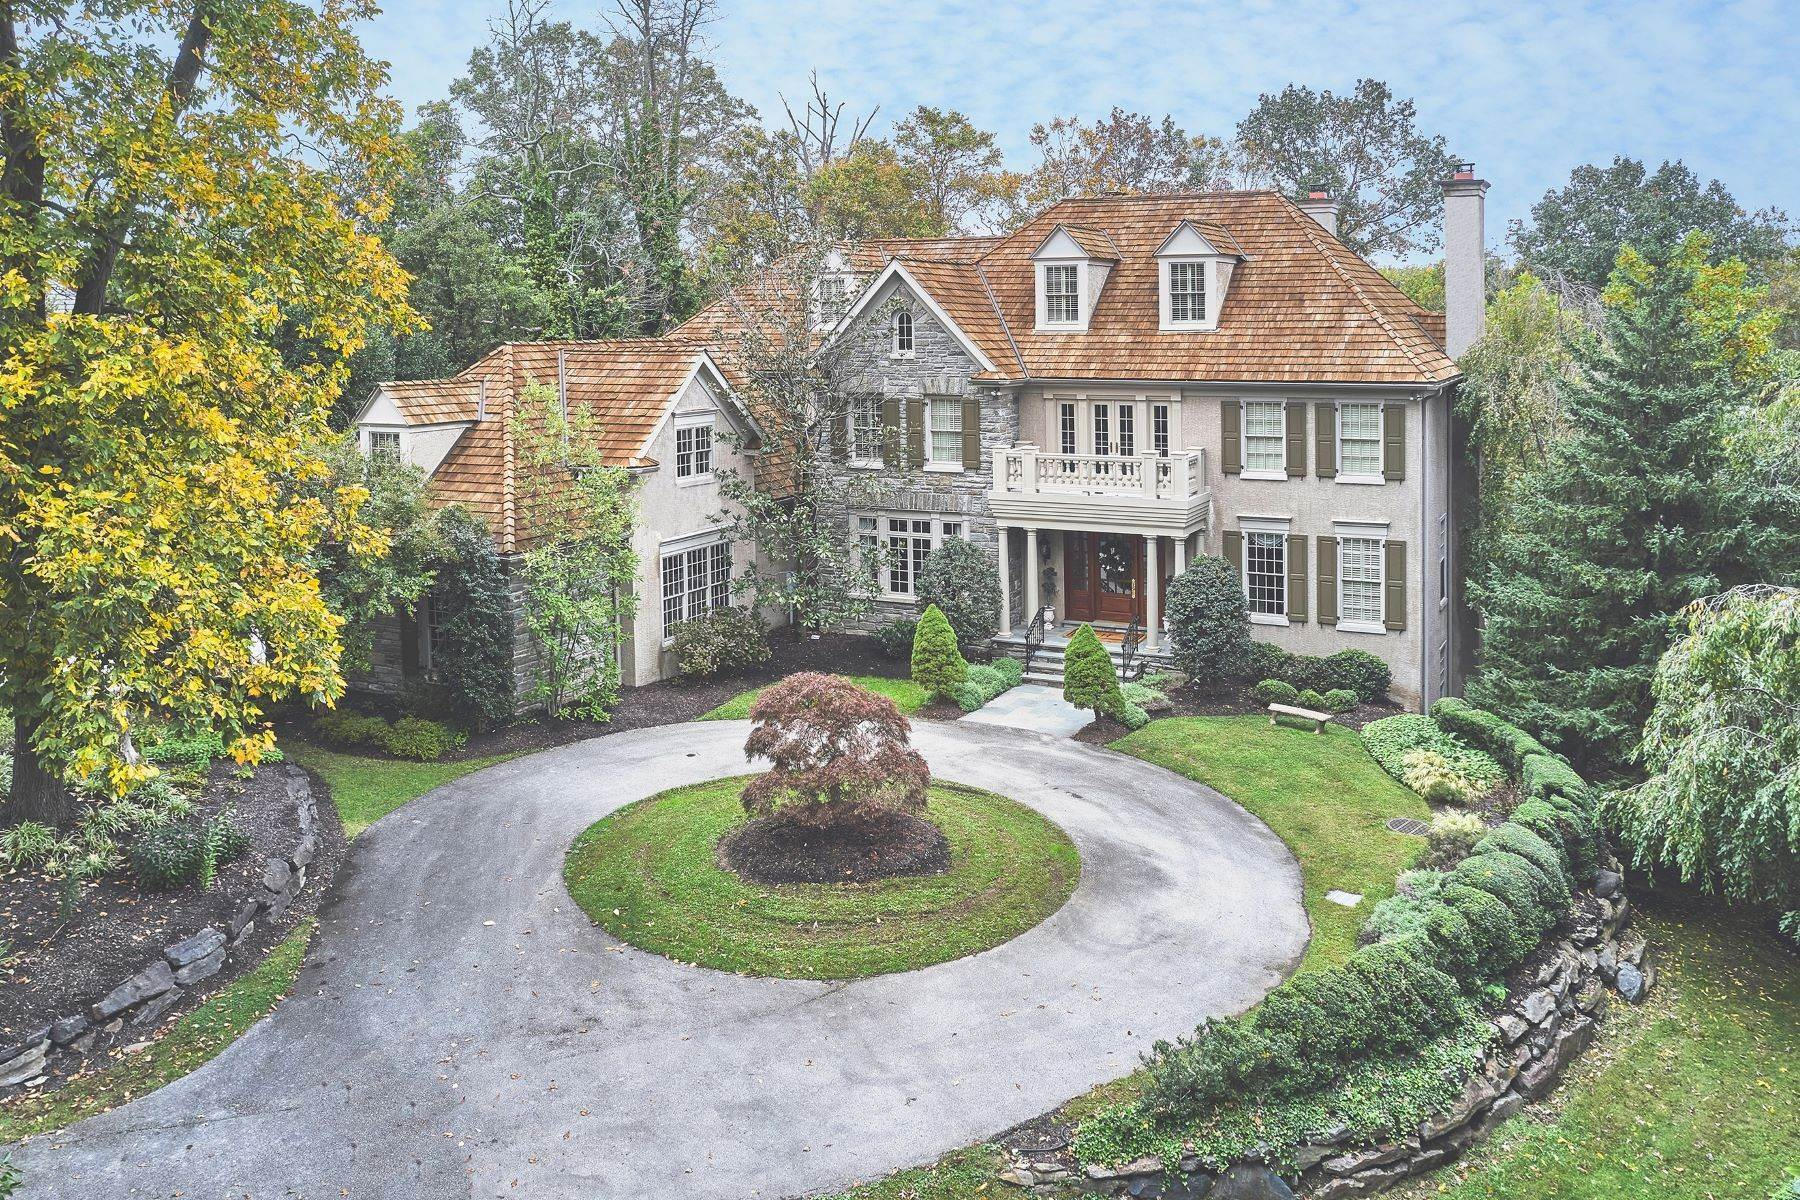 Single Family Homes for Sale at 804 Montparnasse Place Newtown Square, Pennsylvania 19073 United States